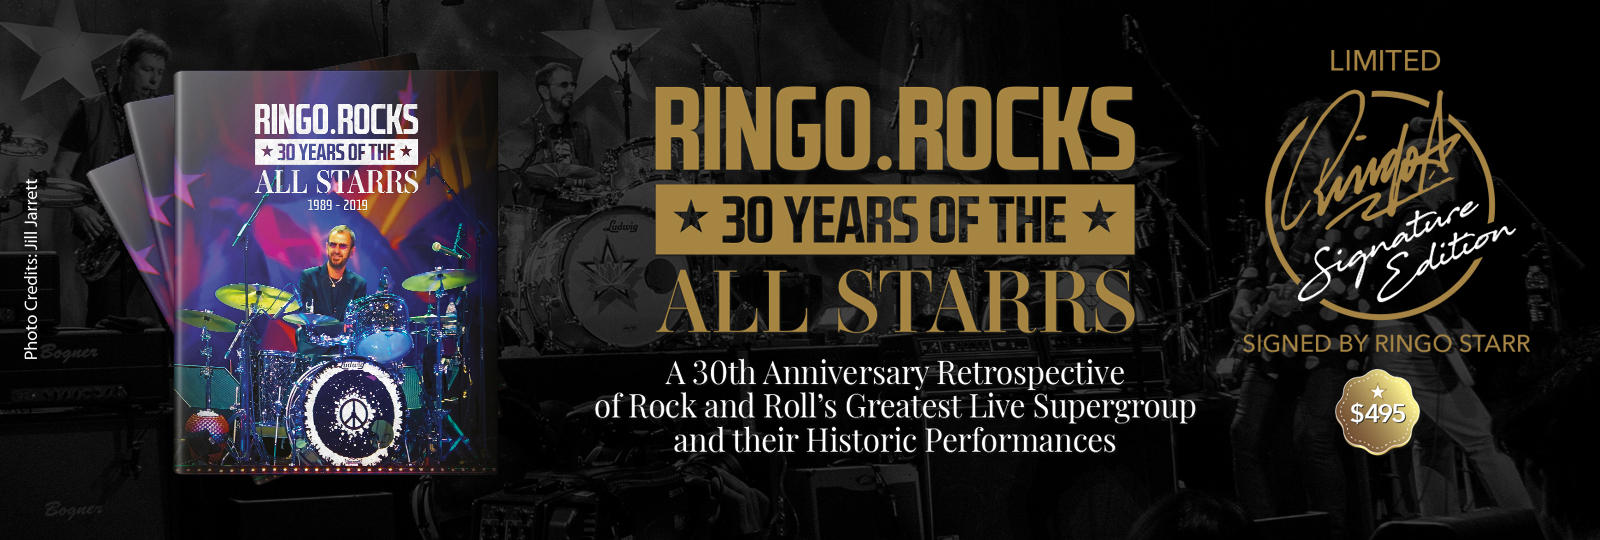 Ringo Rocks Collectors Edition